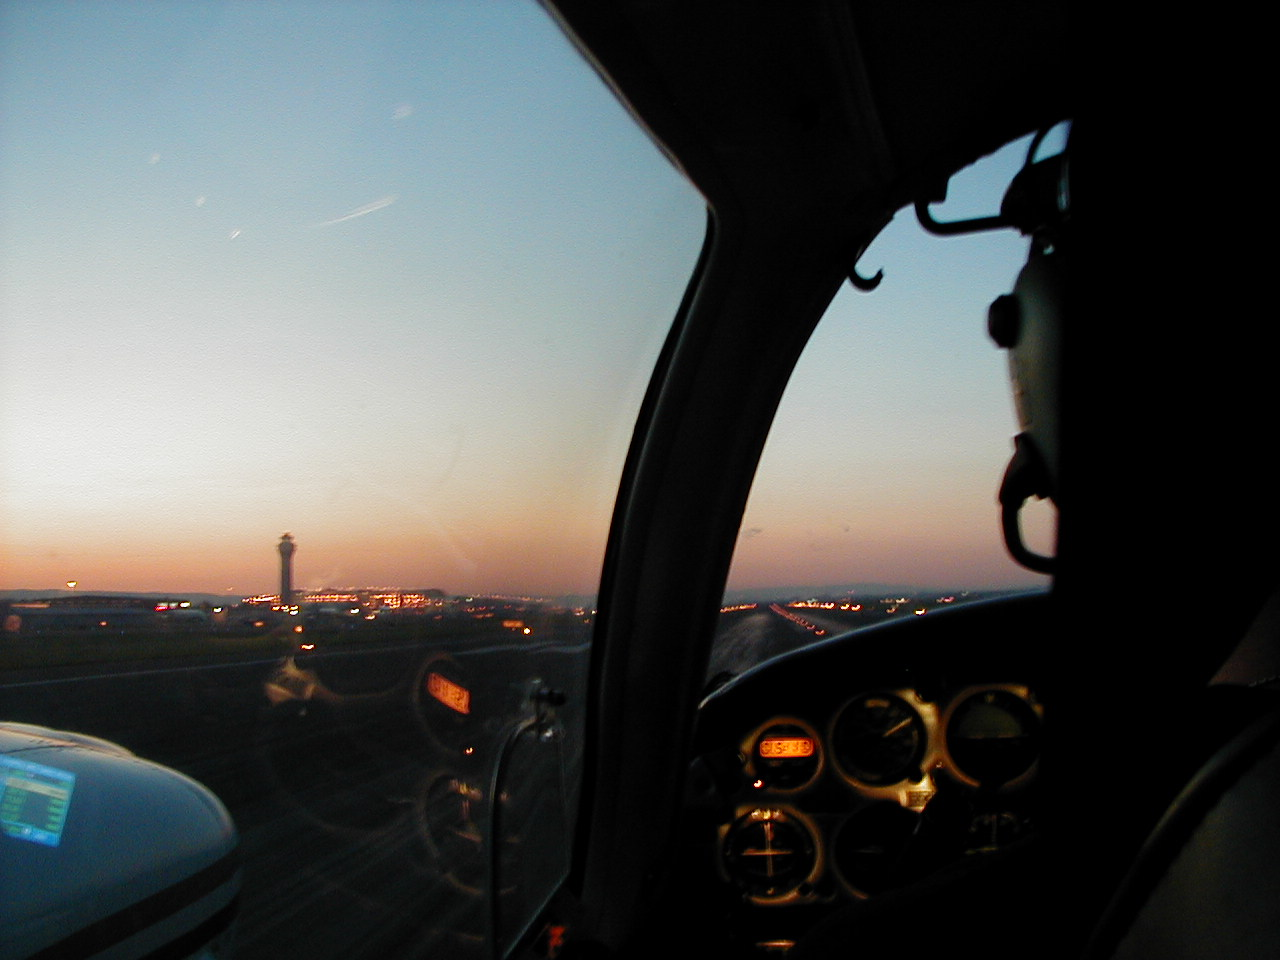 Langley Flying School's Piper Seneca during a twilight departure from Portand International Airport